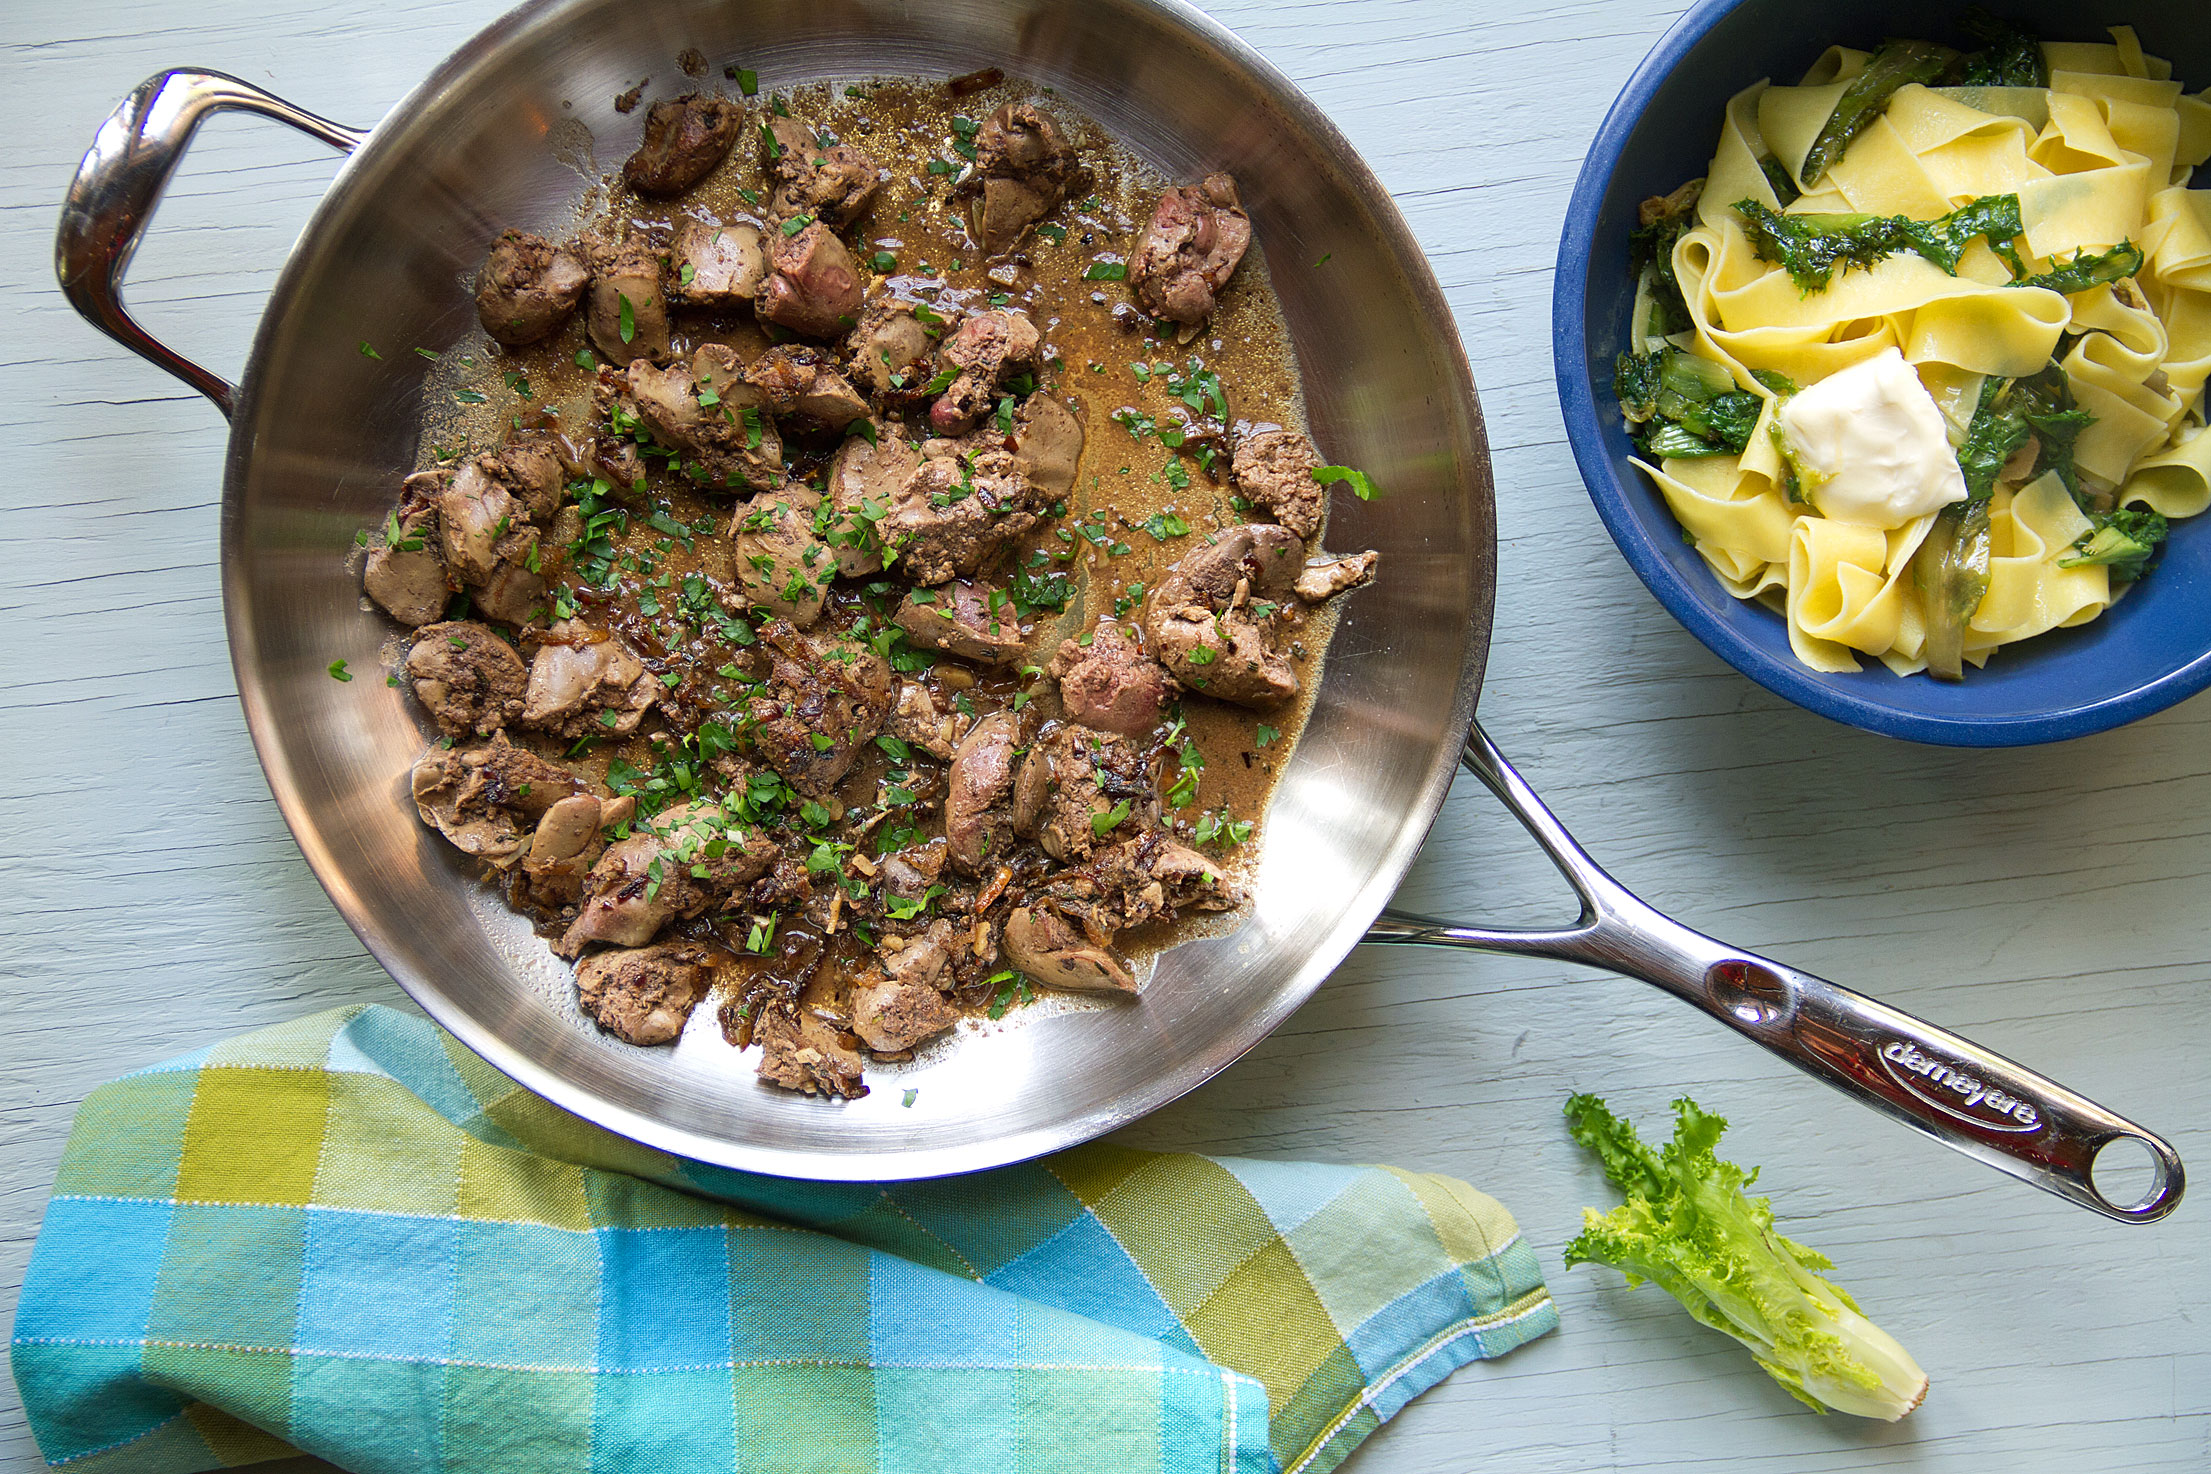 Pappardelle with Sautéed Chicken Livers and Escarole